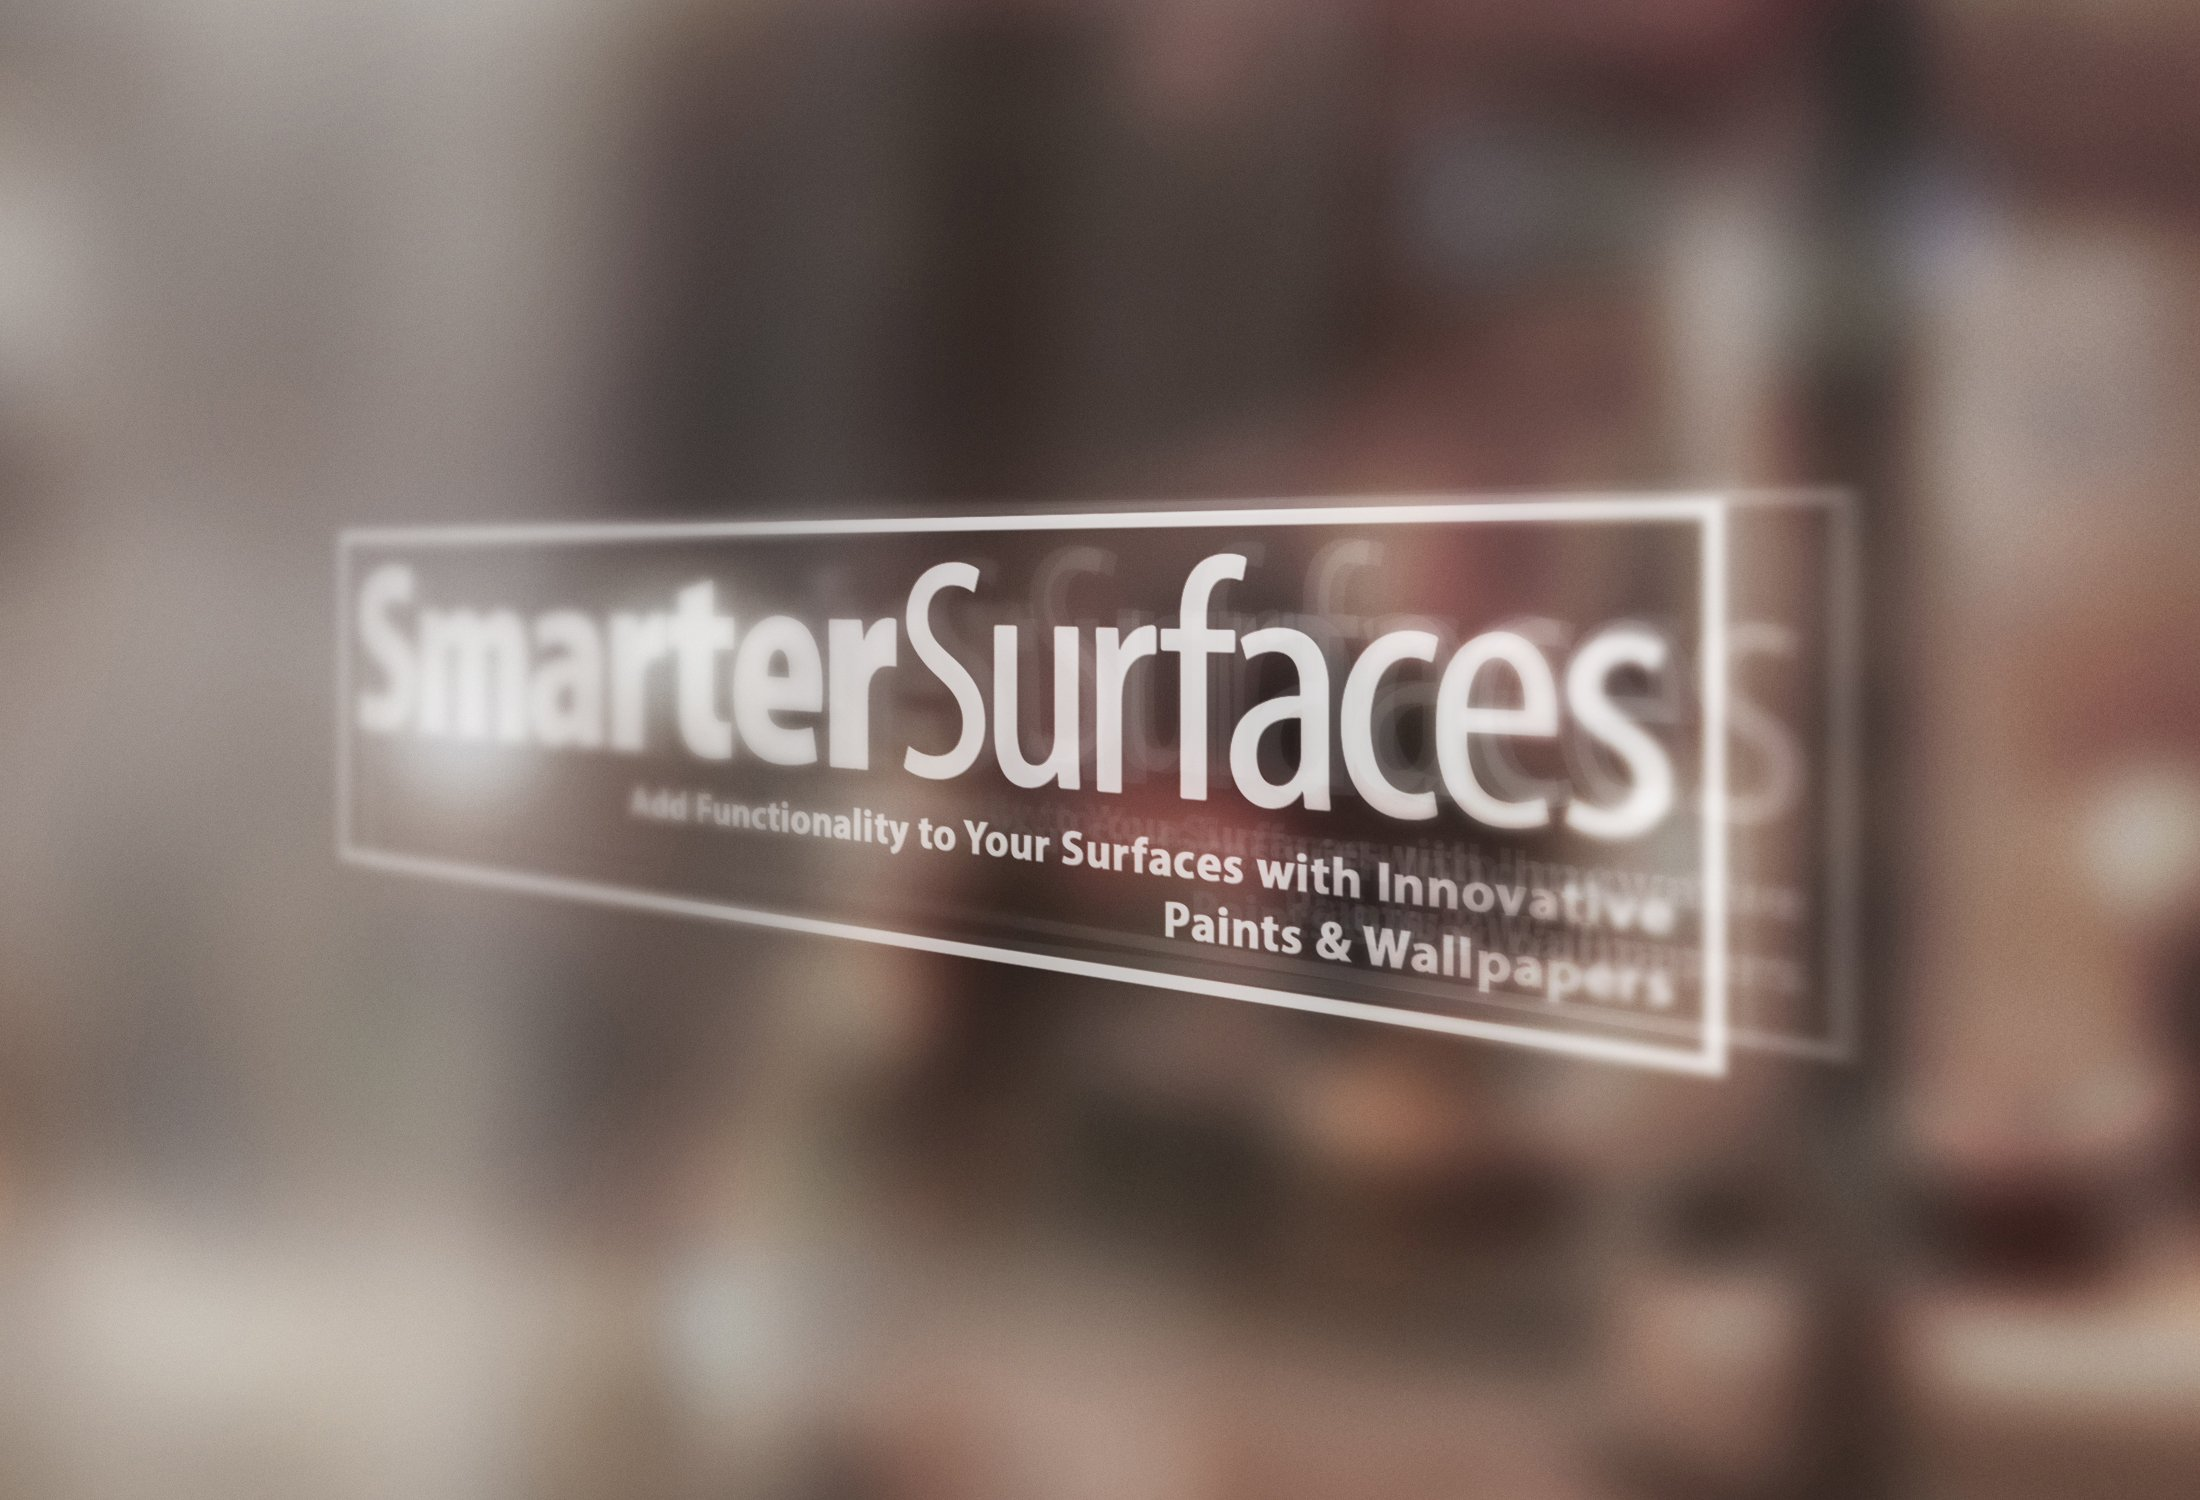 Smarter Surfaces | Smarter Surfaces